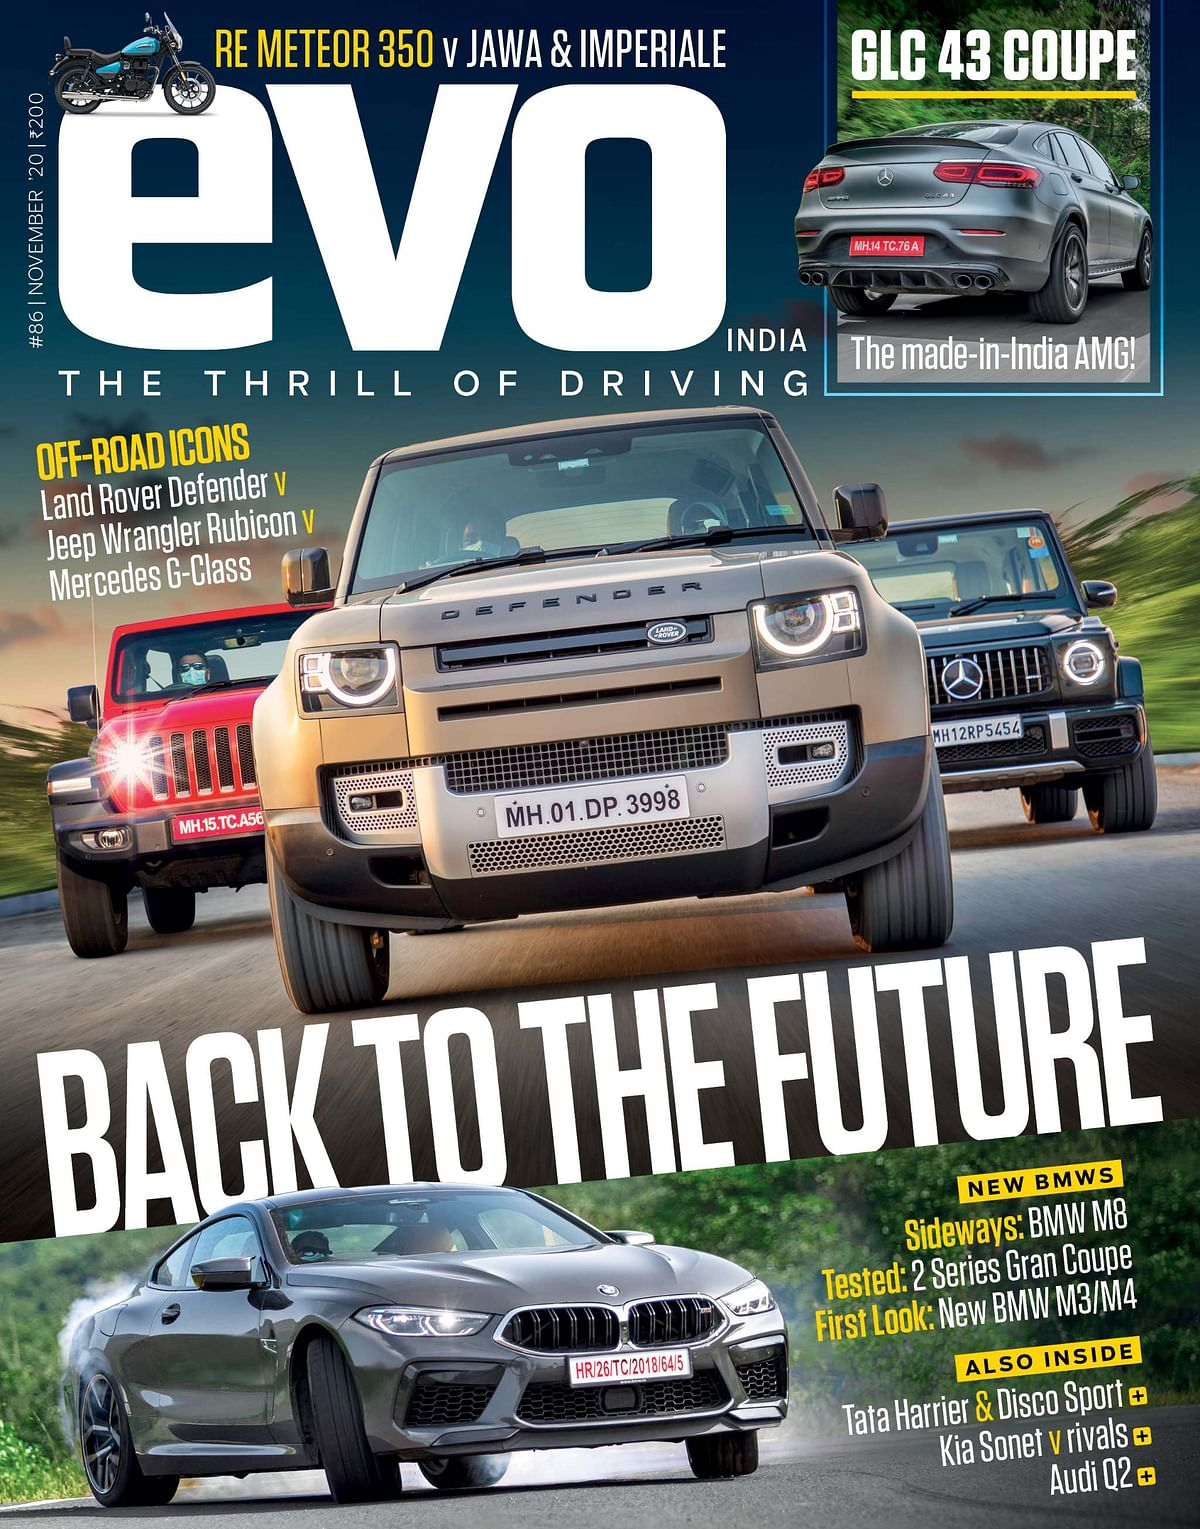 The November issue features icons like the Land Rover Defender, Jeep Wrangler Rubicon and the Mercedes-Benz G-Class